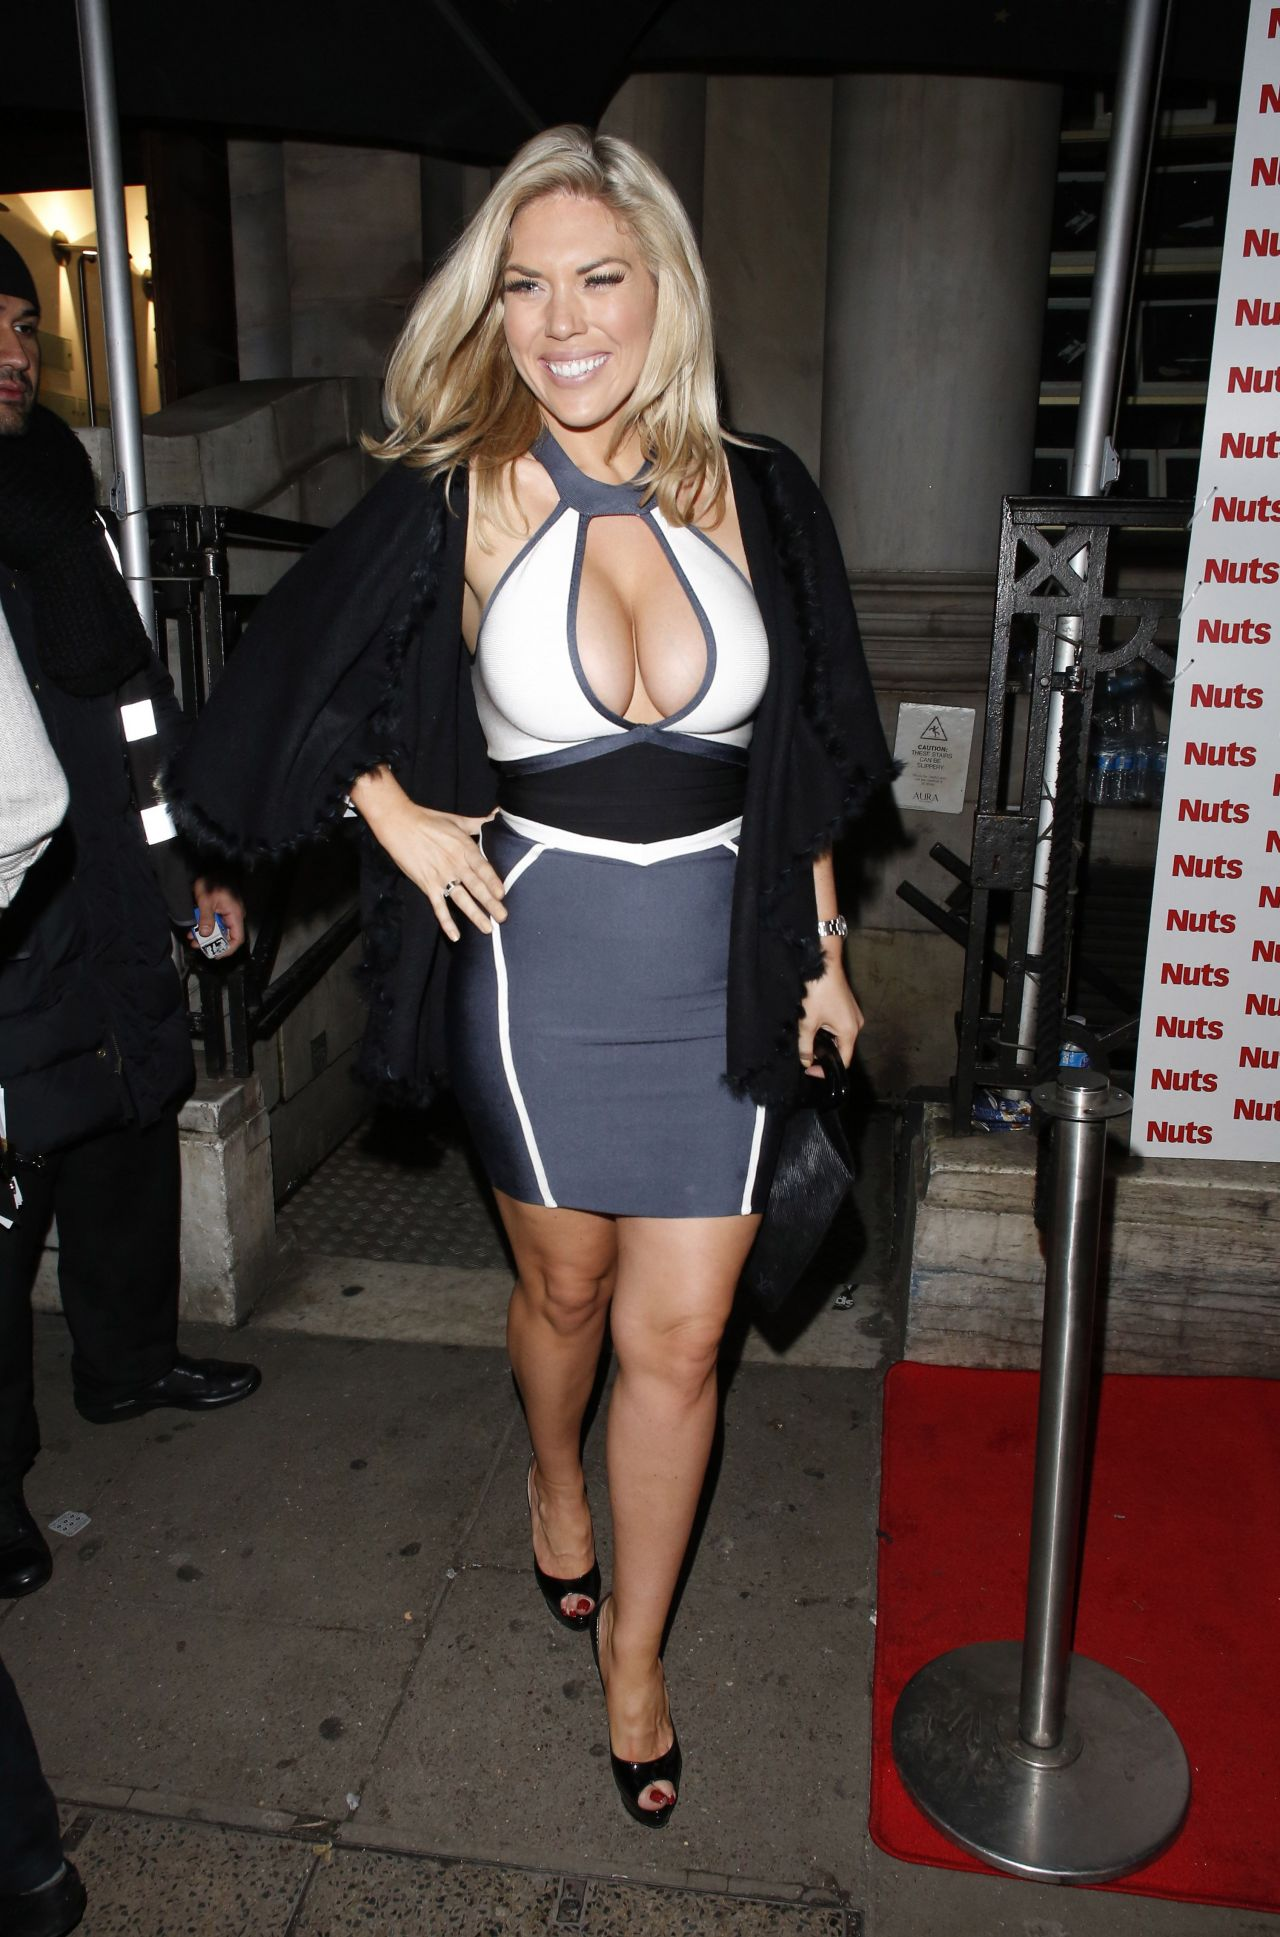 Frankie Essex at NUTS Magazine Party in London - January 2014